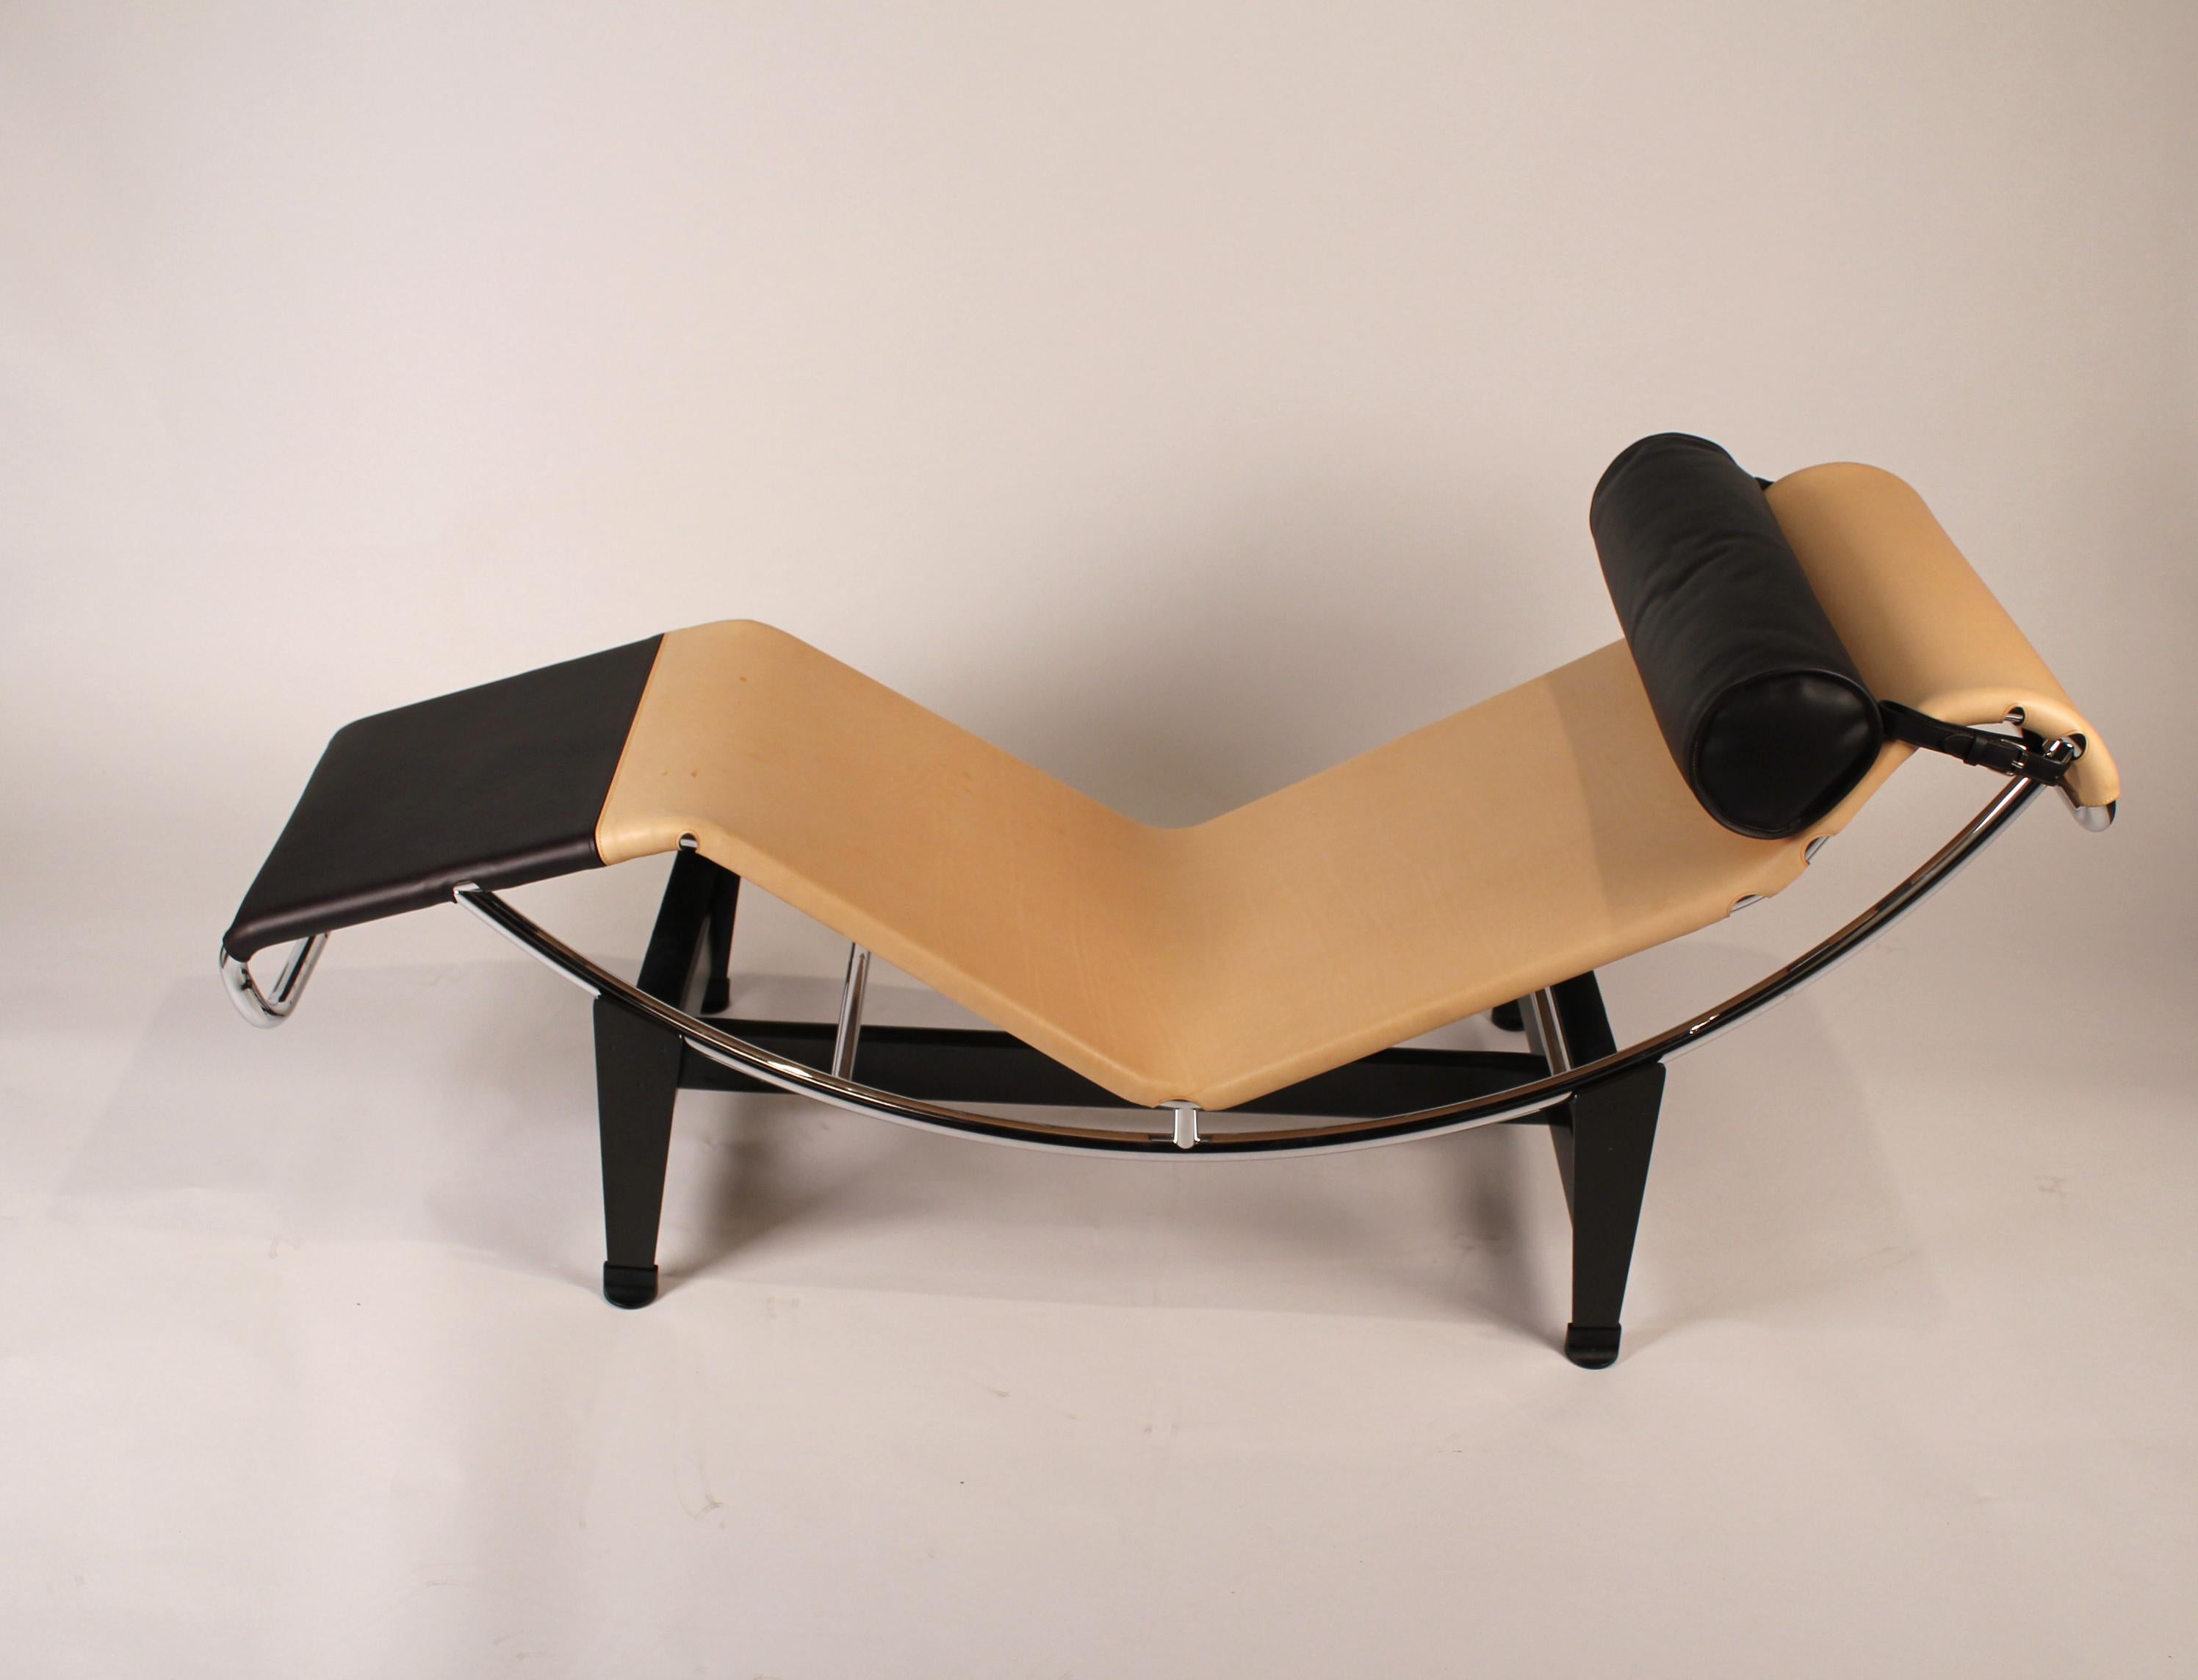 Awesome Lc4 Lounge Designed By Le Corbusier Louis Vuitton Creativecarmelina Interior Chair Design Creativecarmelinacom